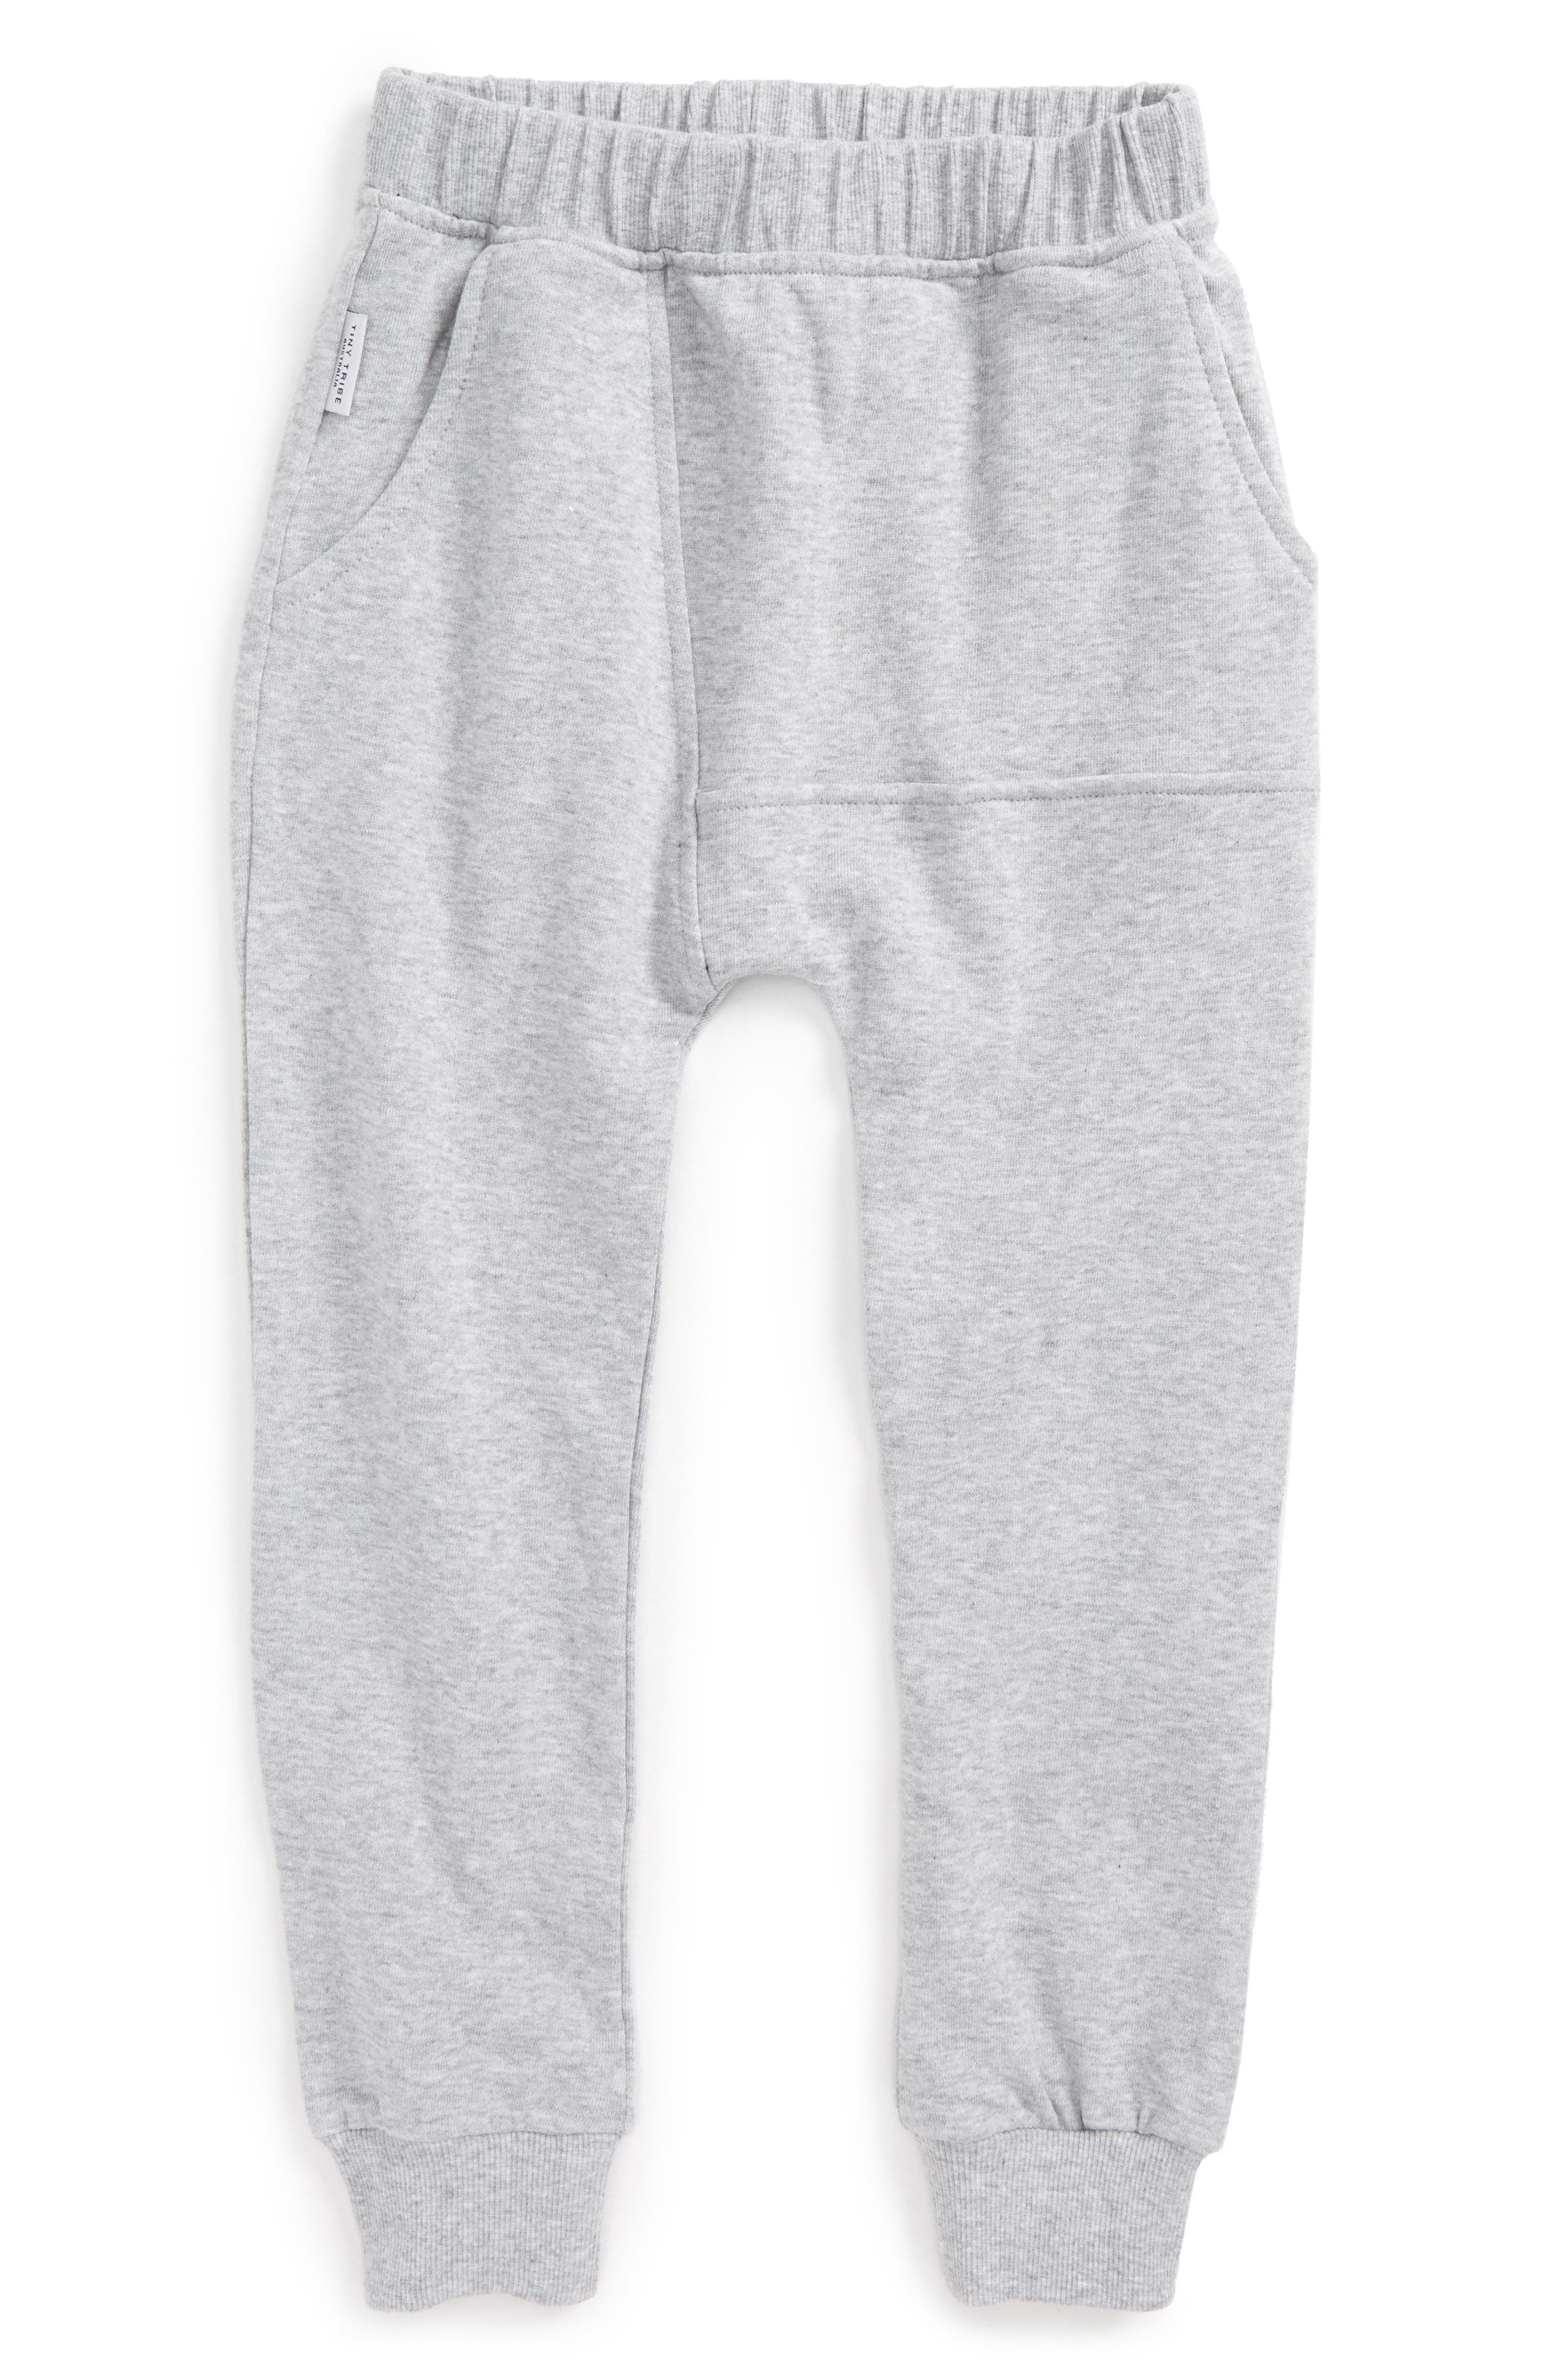 Main Image - Tiny Tribe Sweatpants (Little Boys)